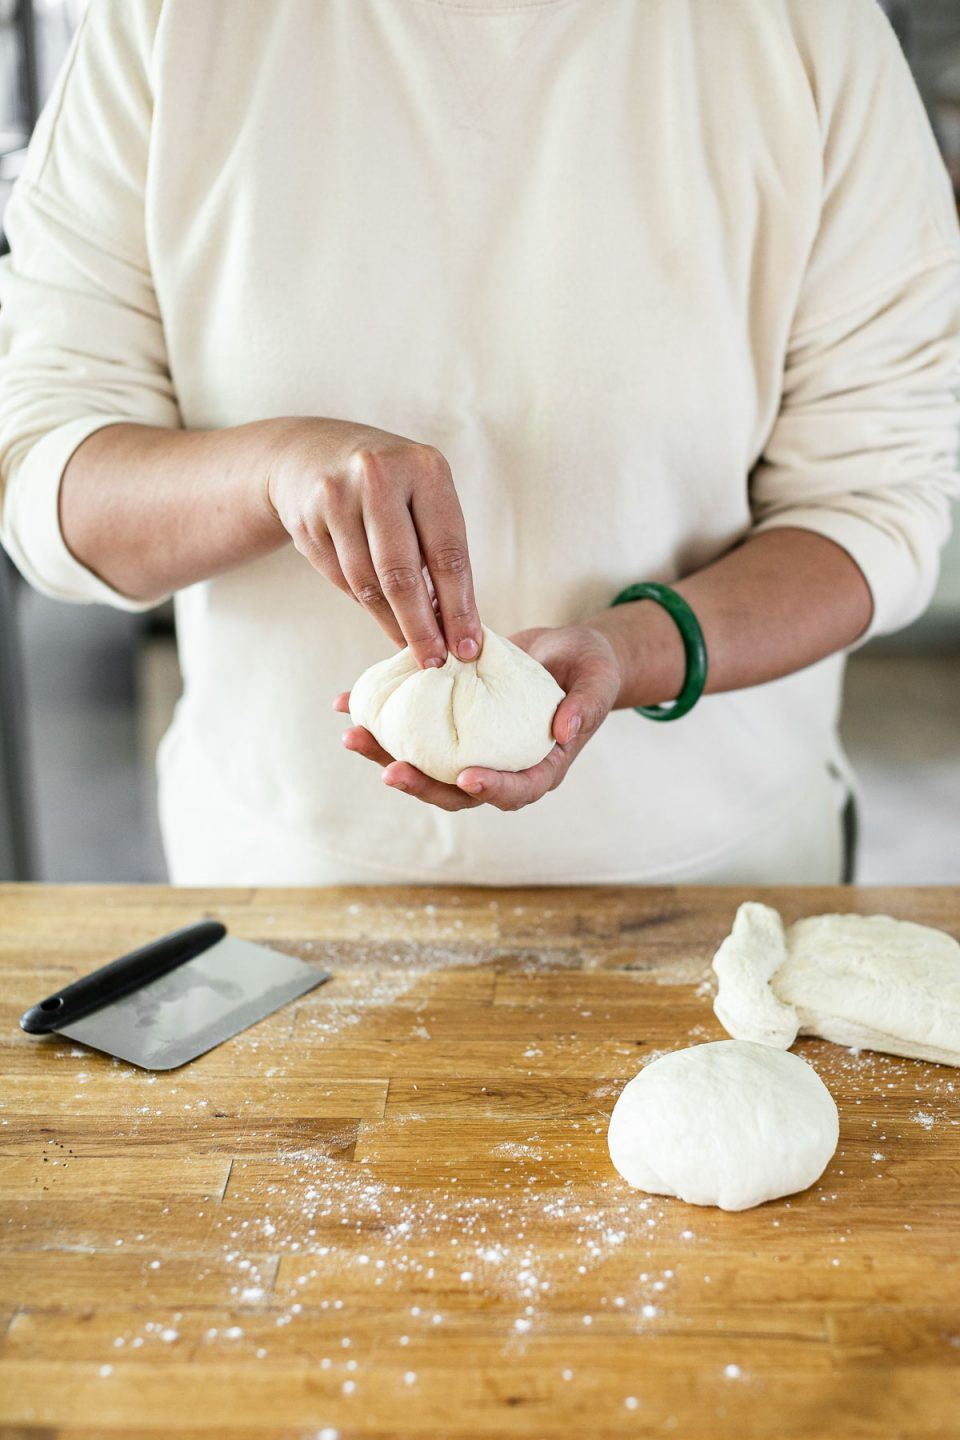 How to shape pizza dough balls: Jess, shown in a white sweatshirt, stands behind a butcher block counter dusted in flour. Jess is pinching the bottom of the pizza dough ball together.